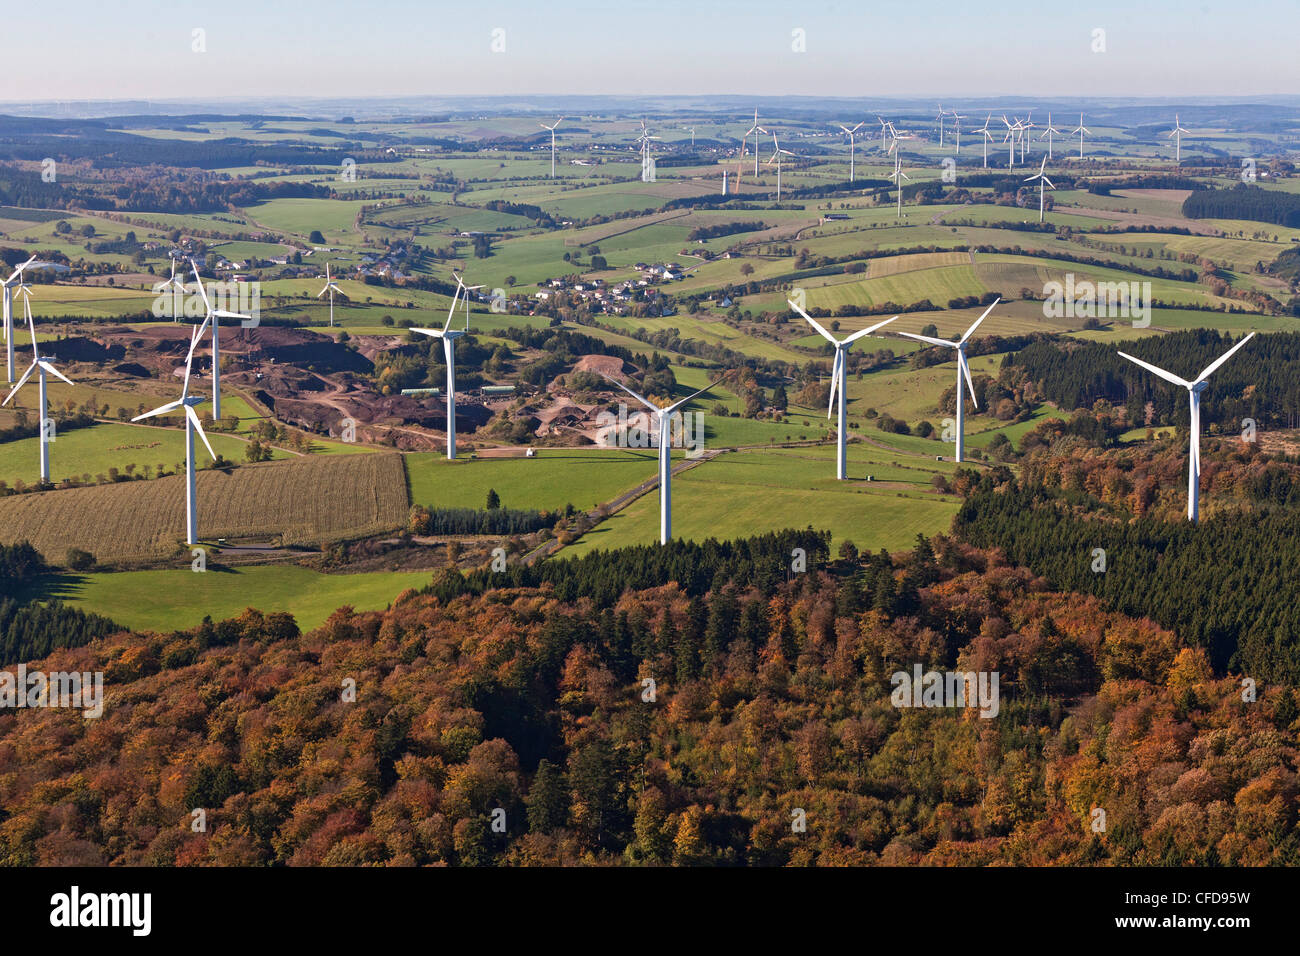 Aerial view of wind wheels at wind turbine park Ormont, Eifel, Rhineland Palatinate, Germany, Europe - Stock Image